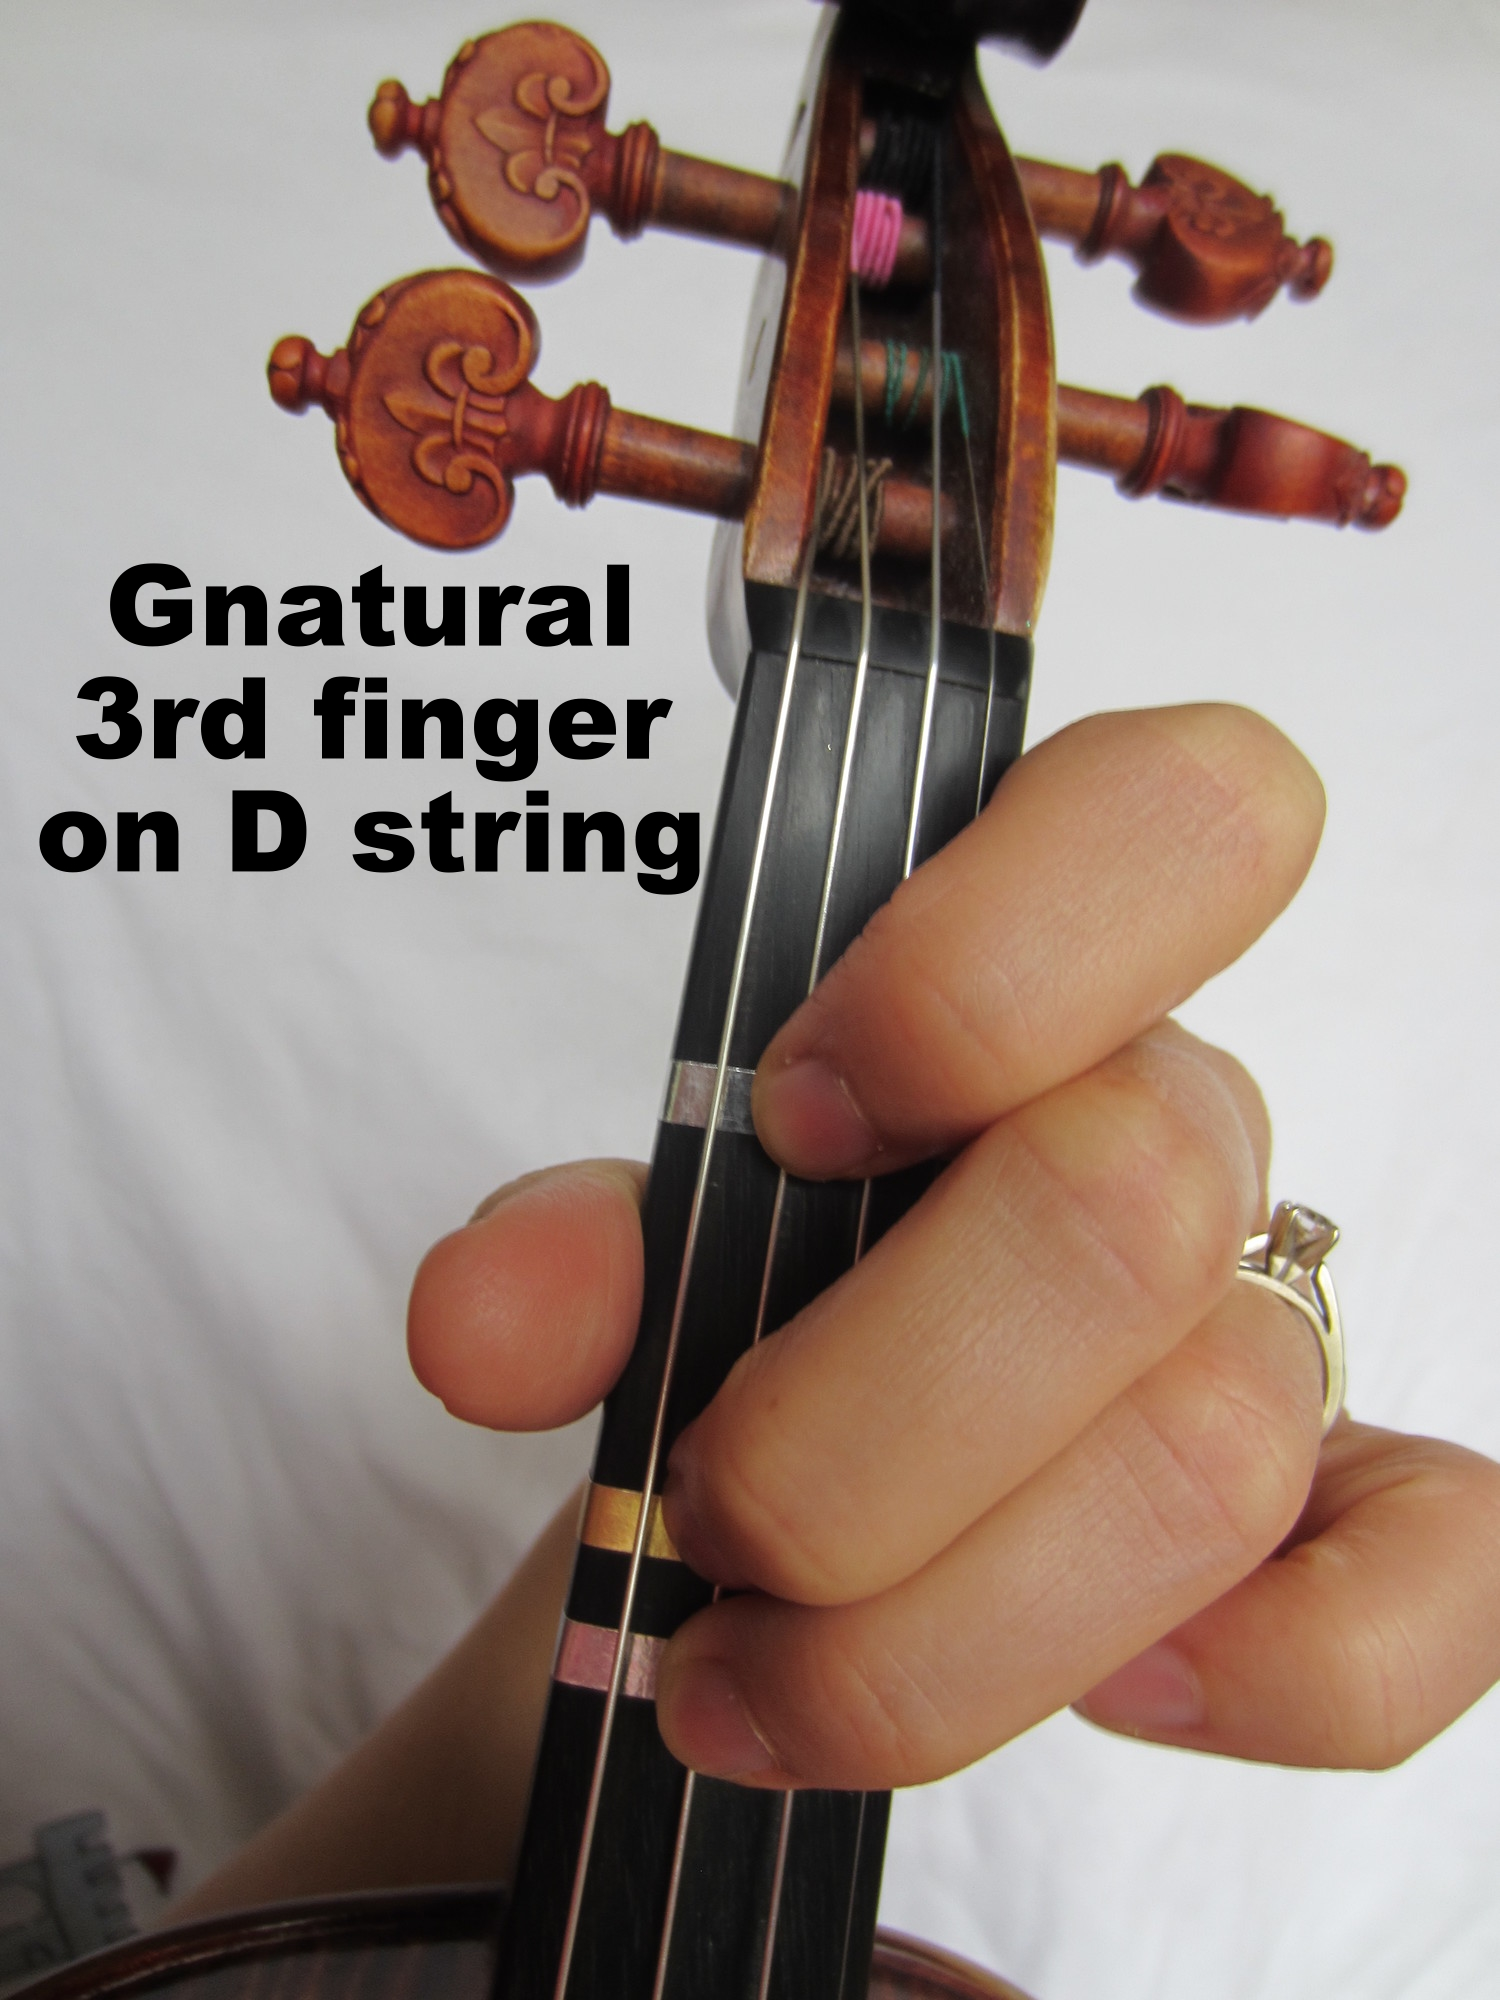 Violin Fingering Gnatural on D.JPG